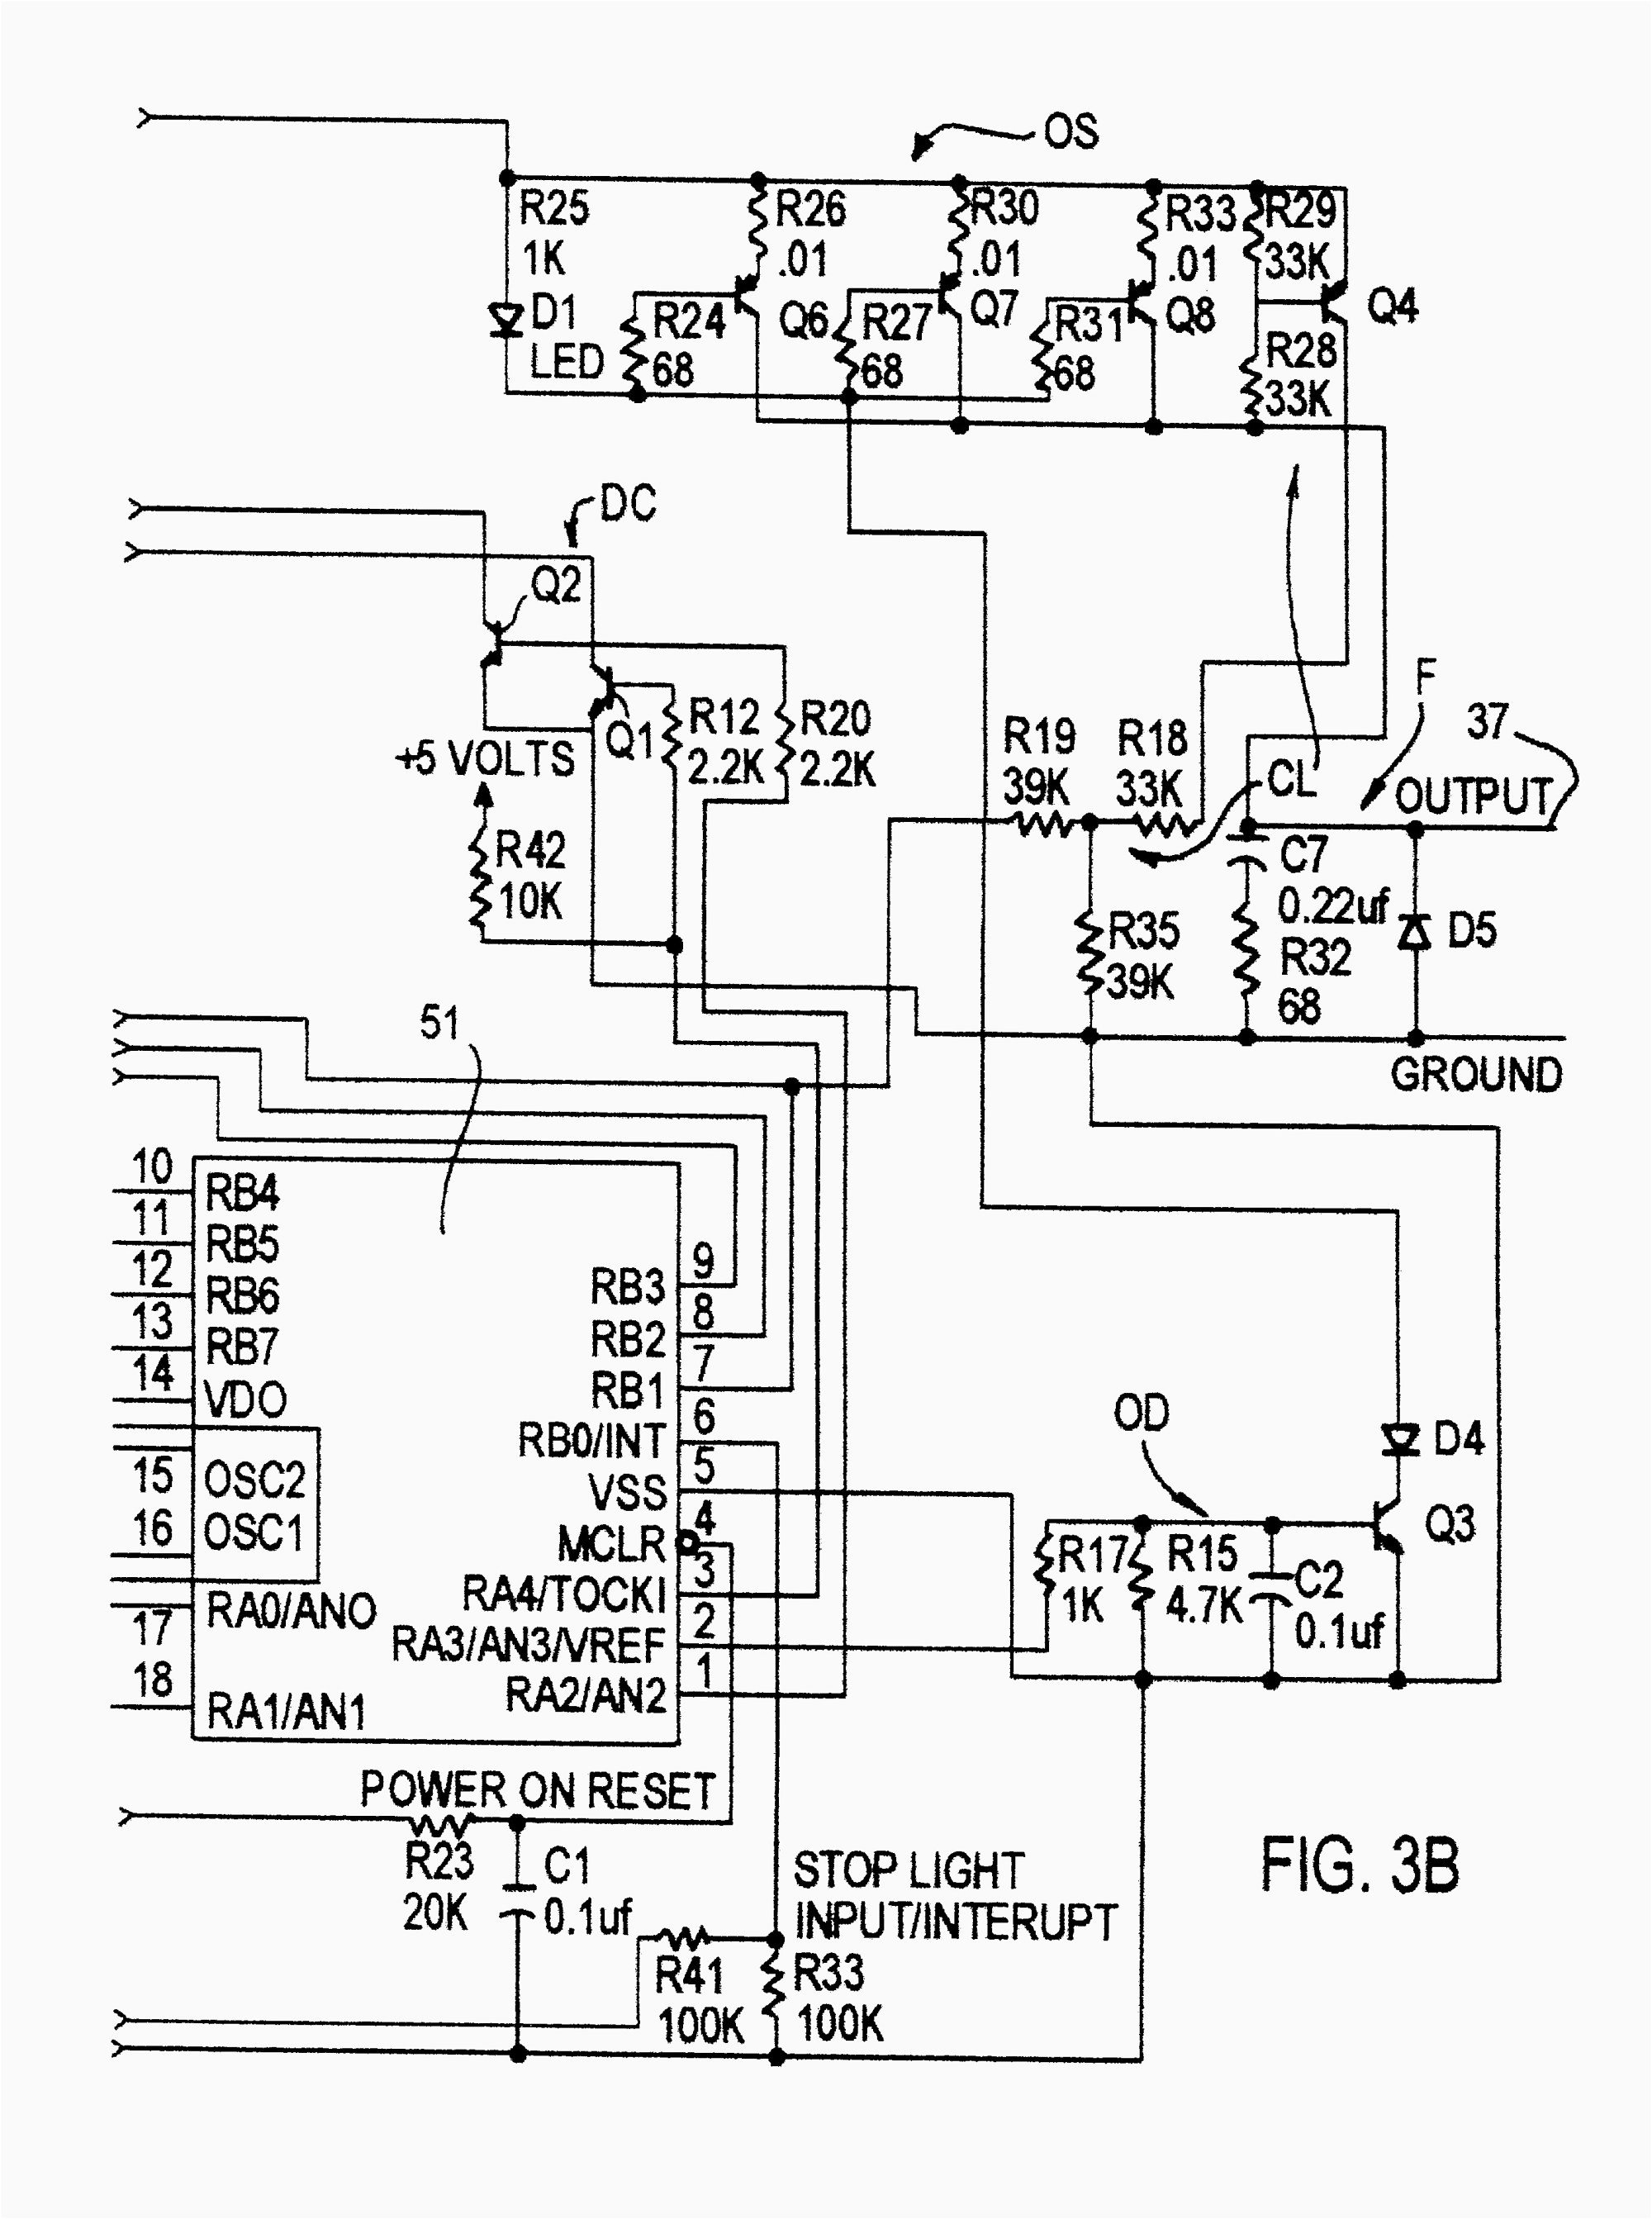 hight resolution of reliance trailer brake controller wiring diagram wiring library rh 83 mac happen de 7 wire